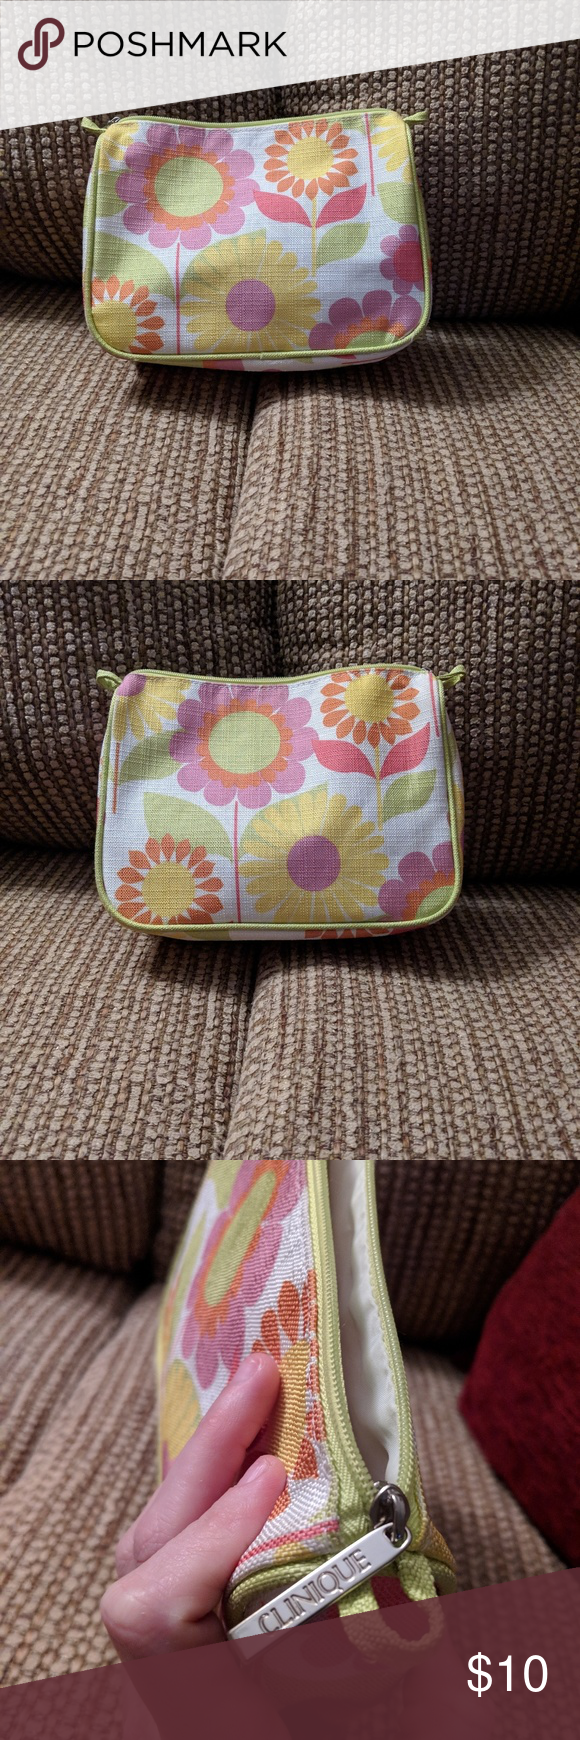 FREE w/ purchase. New Clinique cosmetic makeup bag FREE